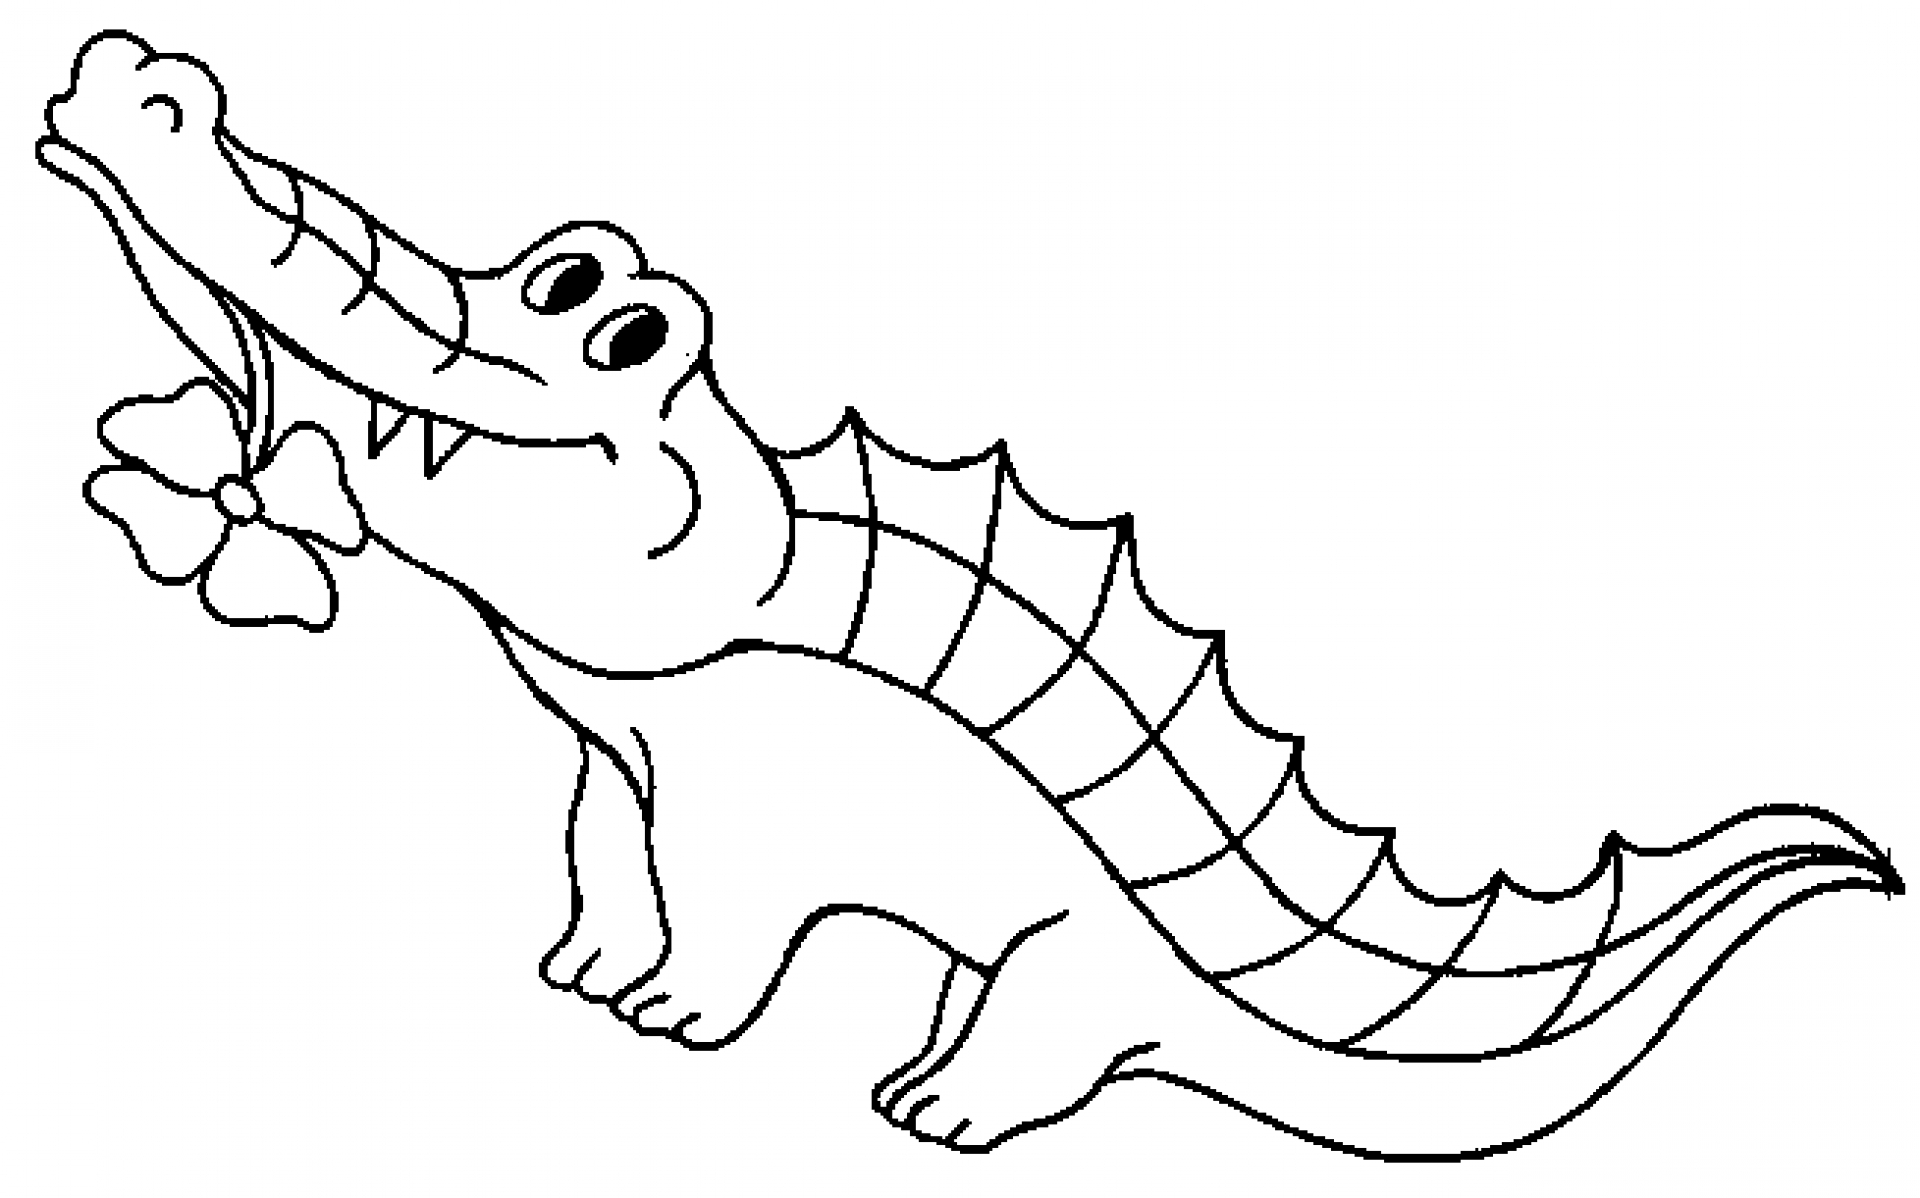 Crocodiles Coloring Pages  Coloring Pages for Kids